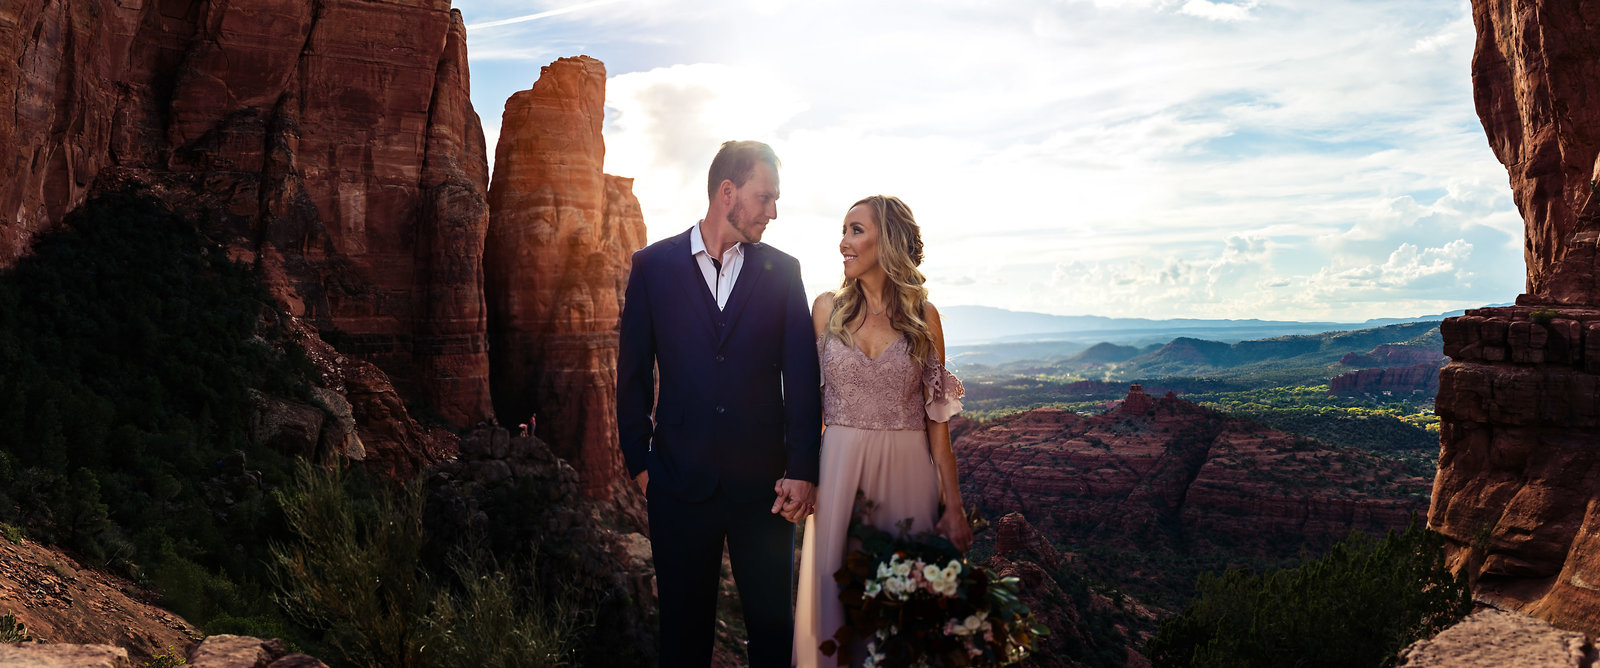 Epic landscape photo of an elopement couple in Sedona, Arizona on the top of Cathedral Rock